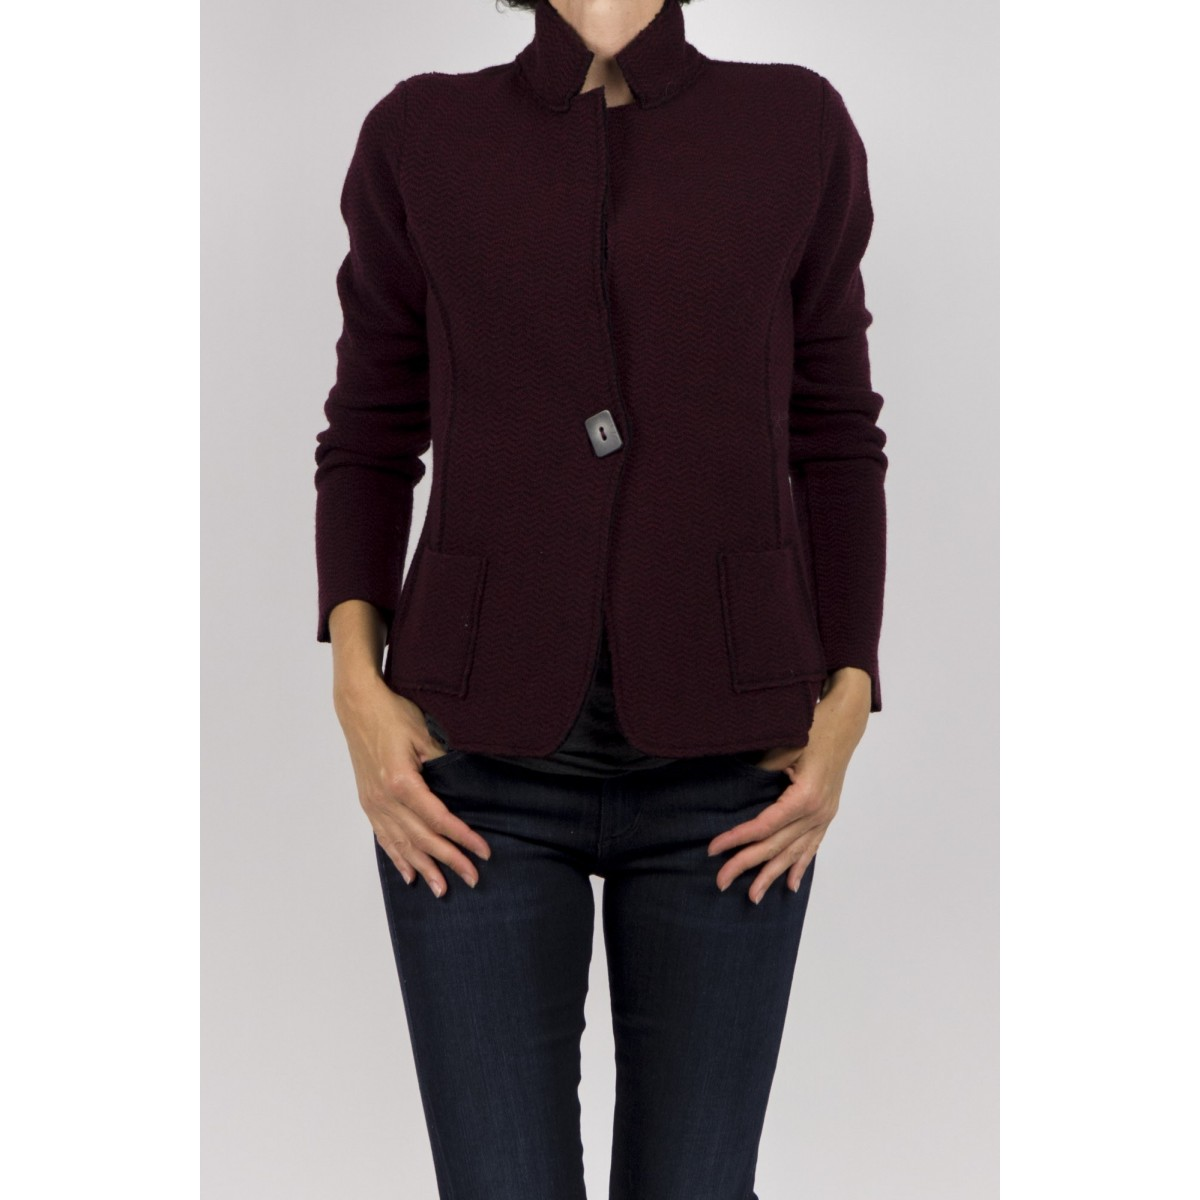 Wool Jacket Kangra Woman- 7550/57 207 - Bordo